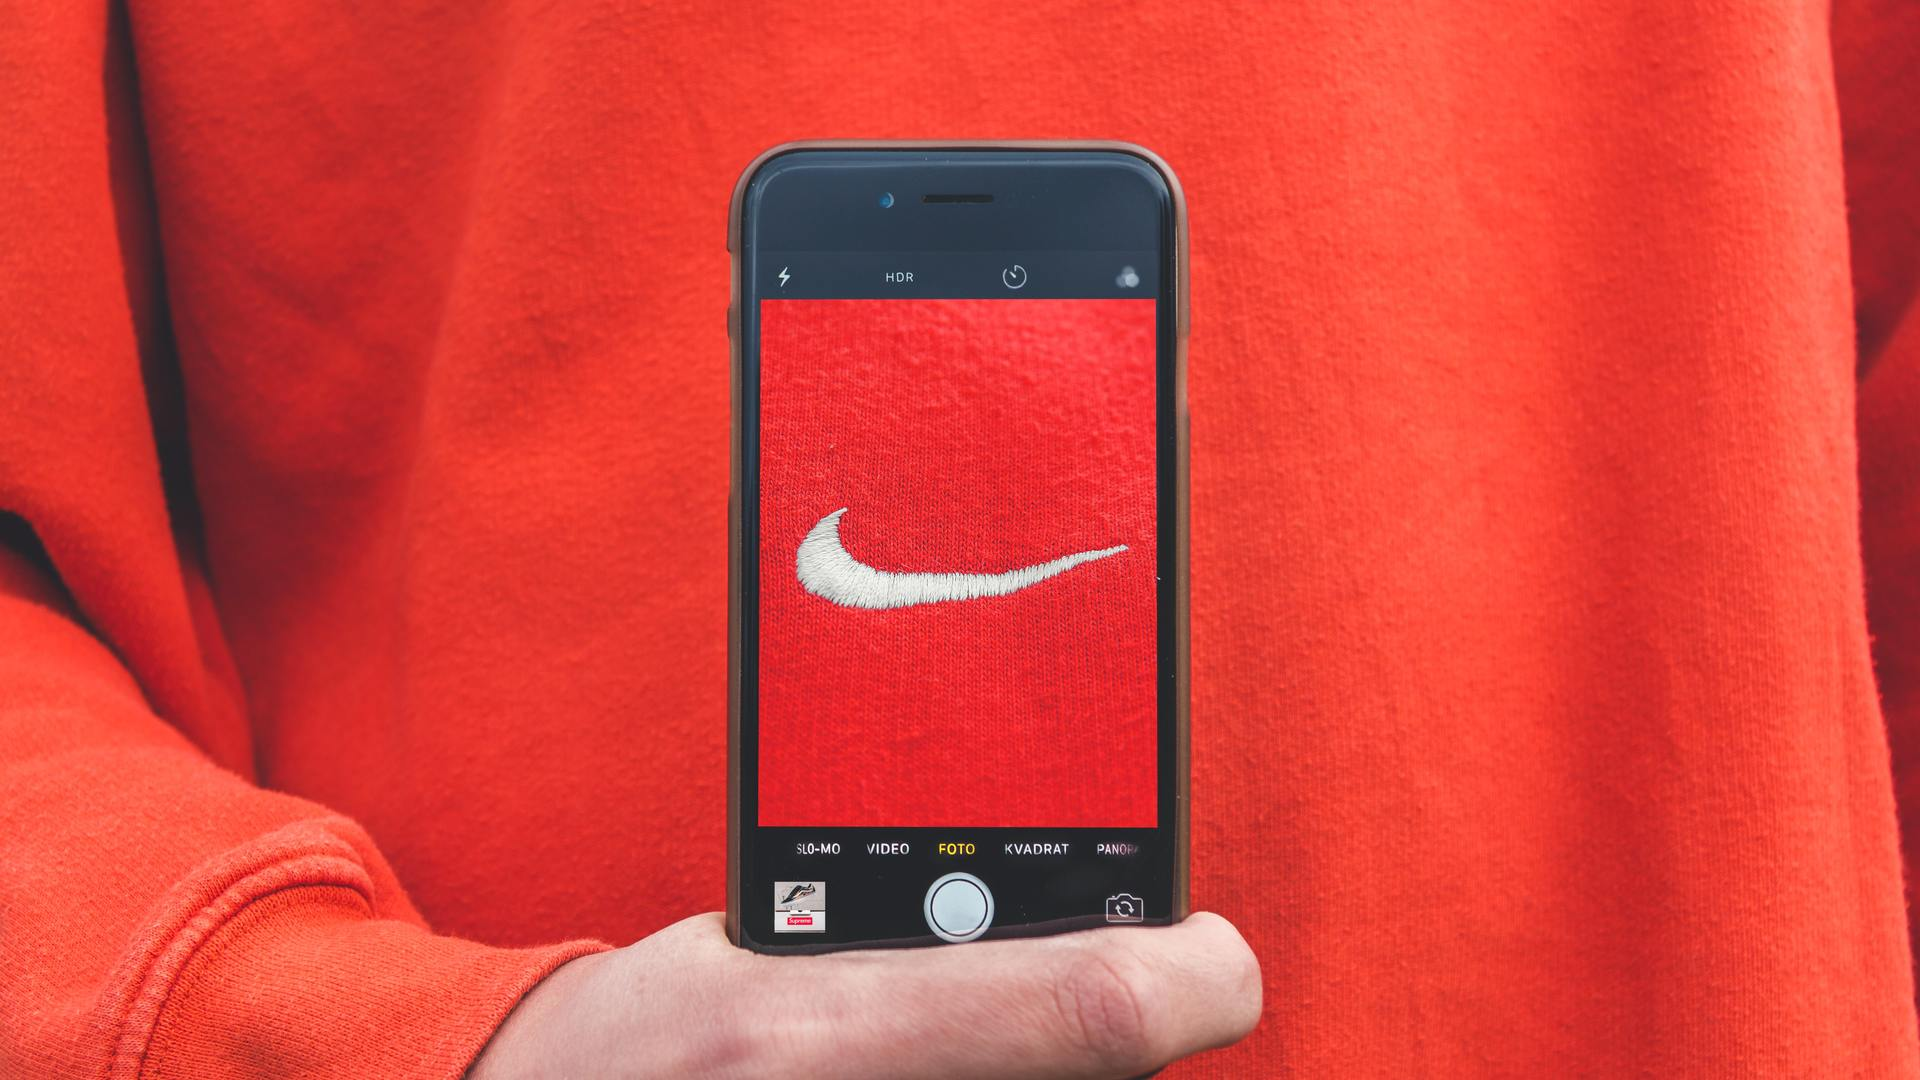 Why has augmented reality become important to advertisers?